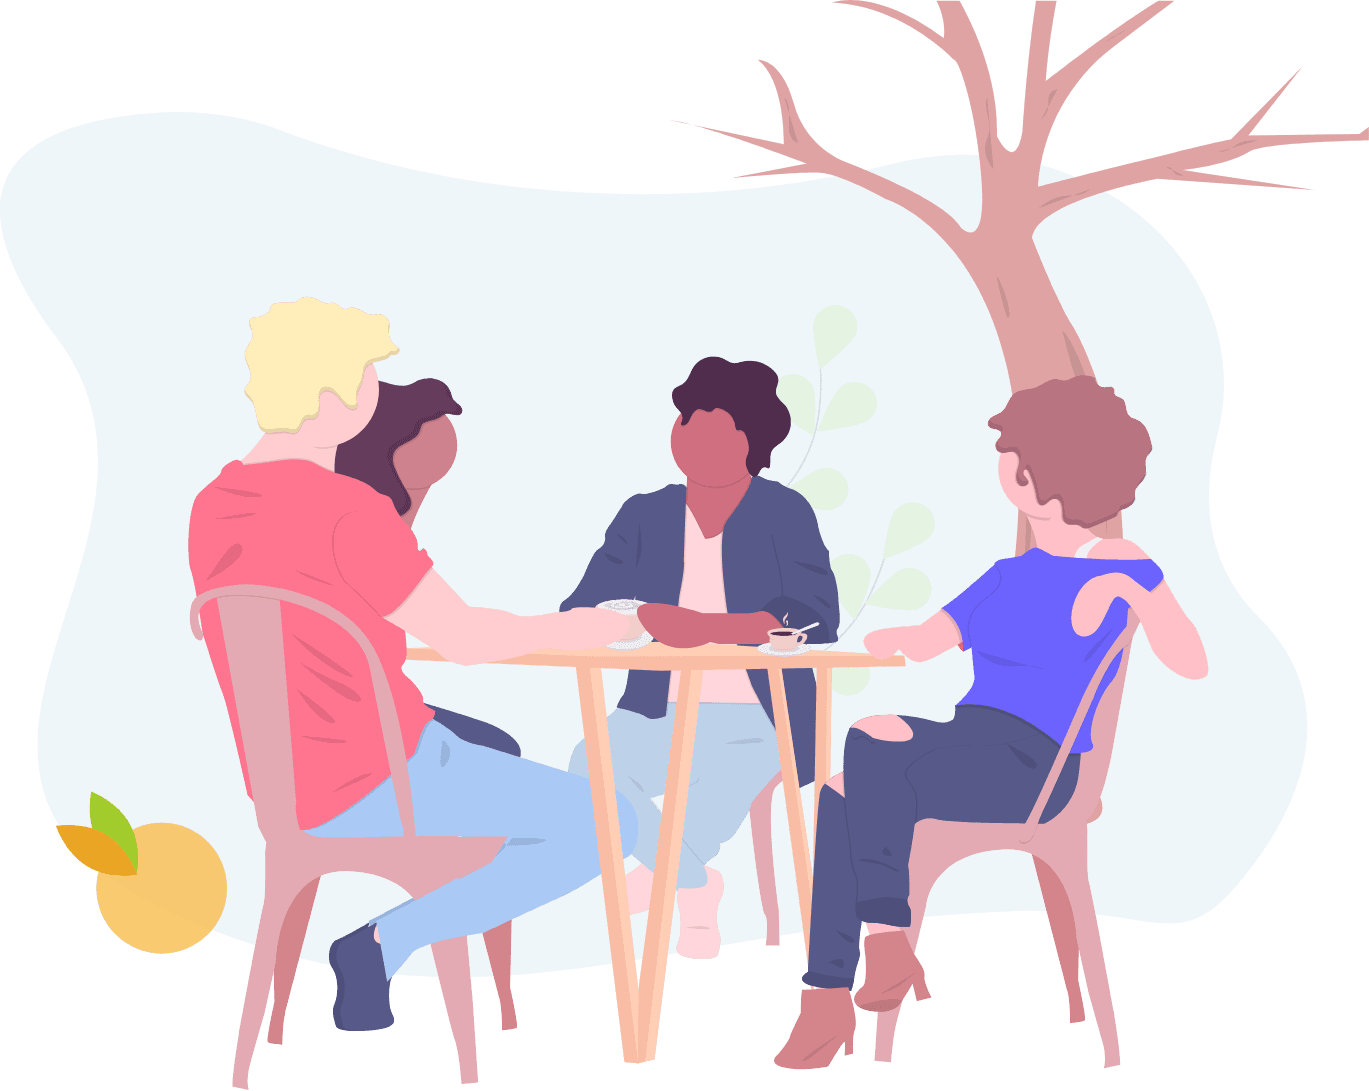 Drawing of a group of people having coffee and chatting